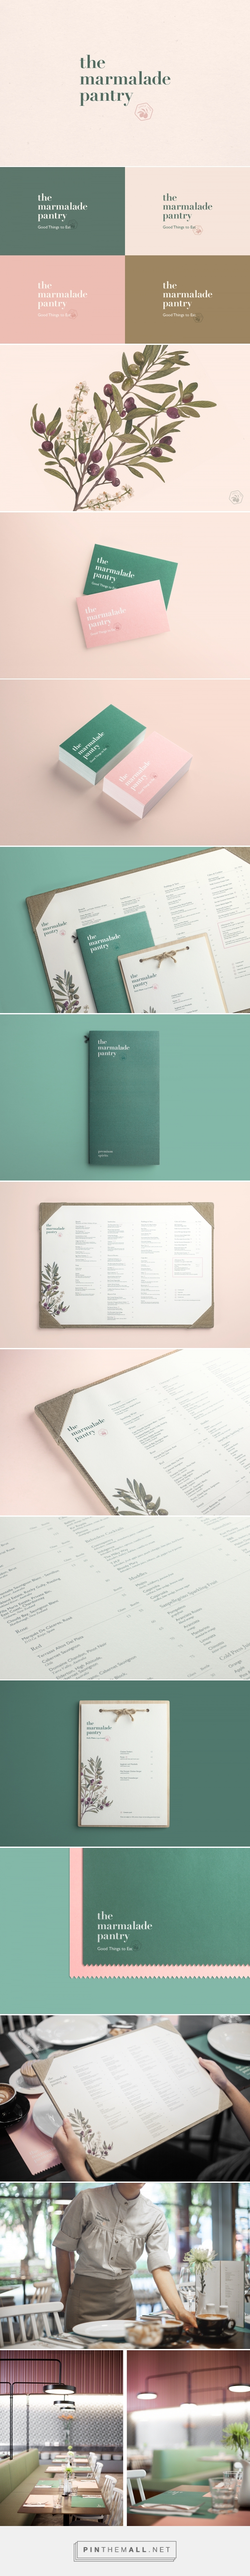 The Marmalade Pantry On Behance A Grouped Images Picture Pin Them All With Images Cafe Branding Identity Design Inspiration Brand Identity Design